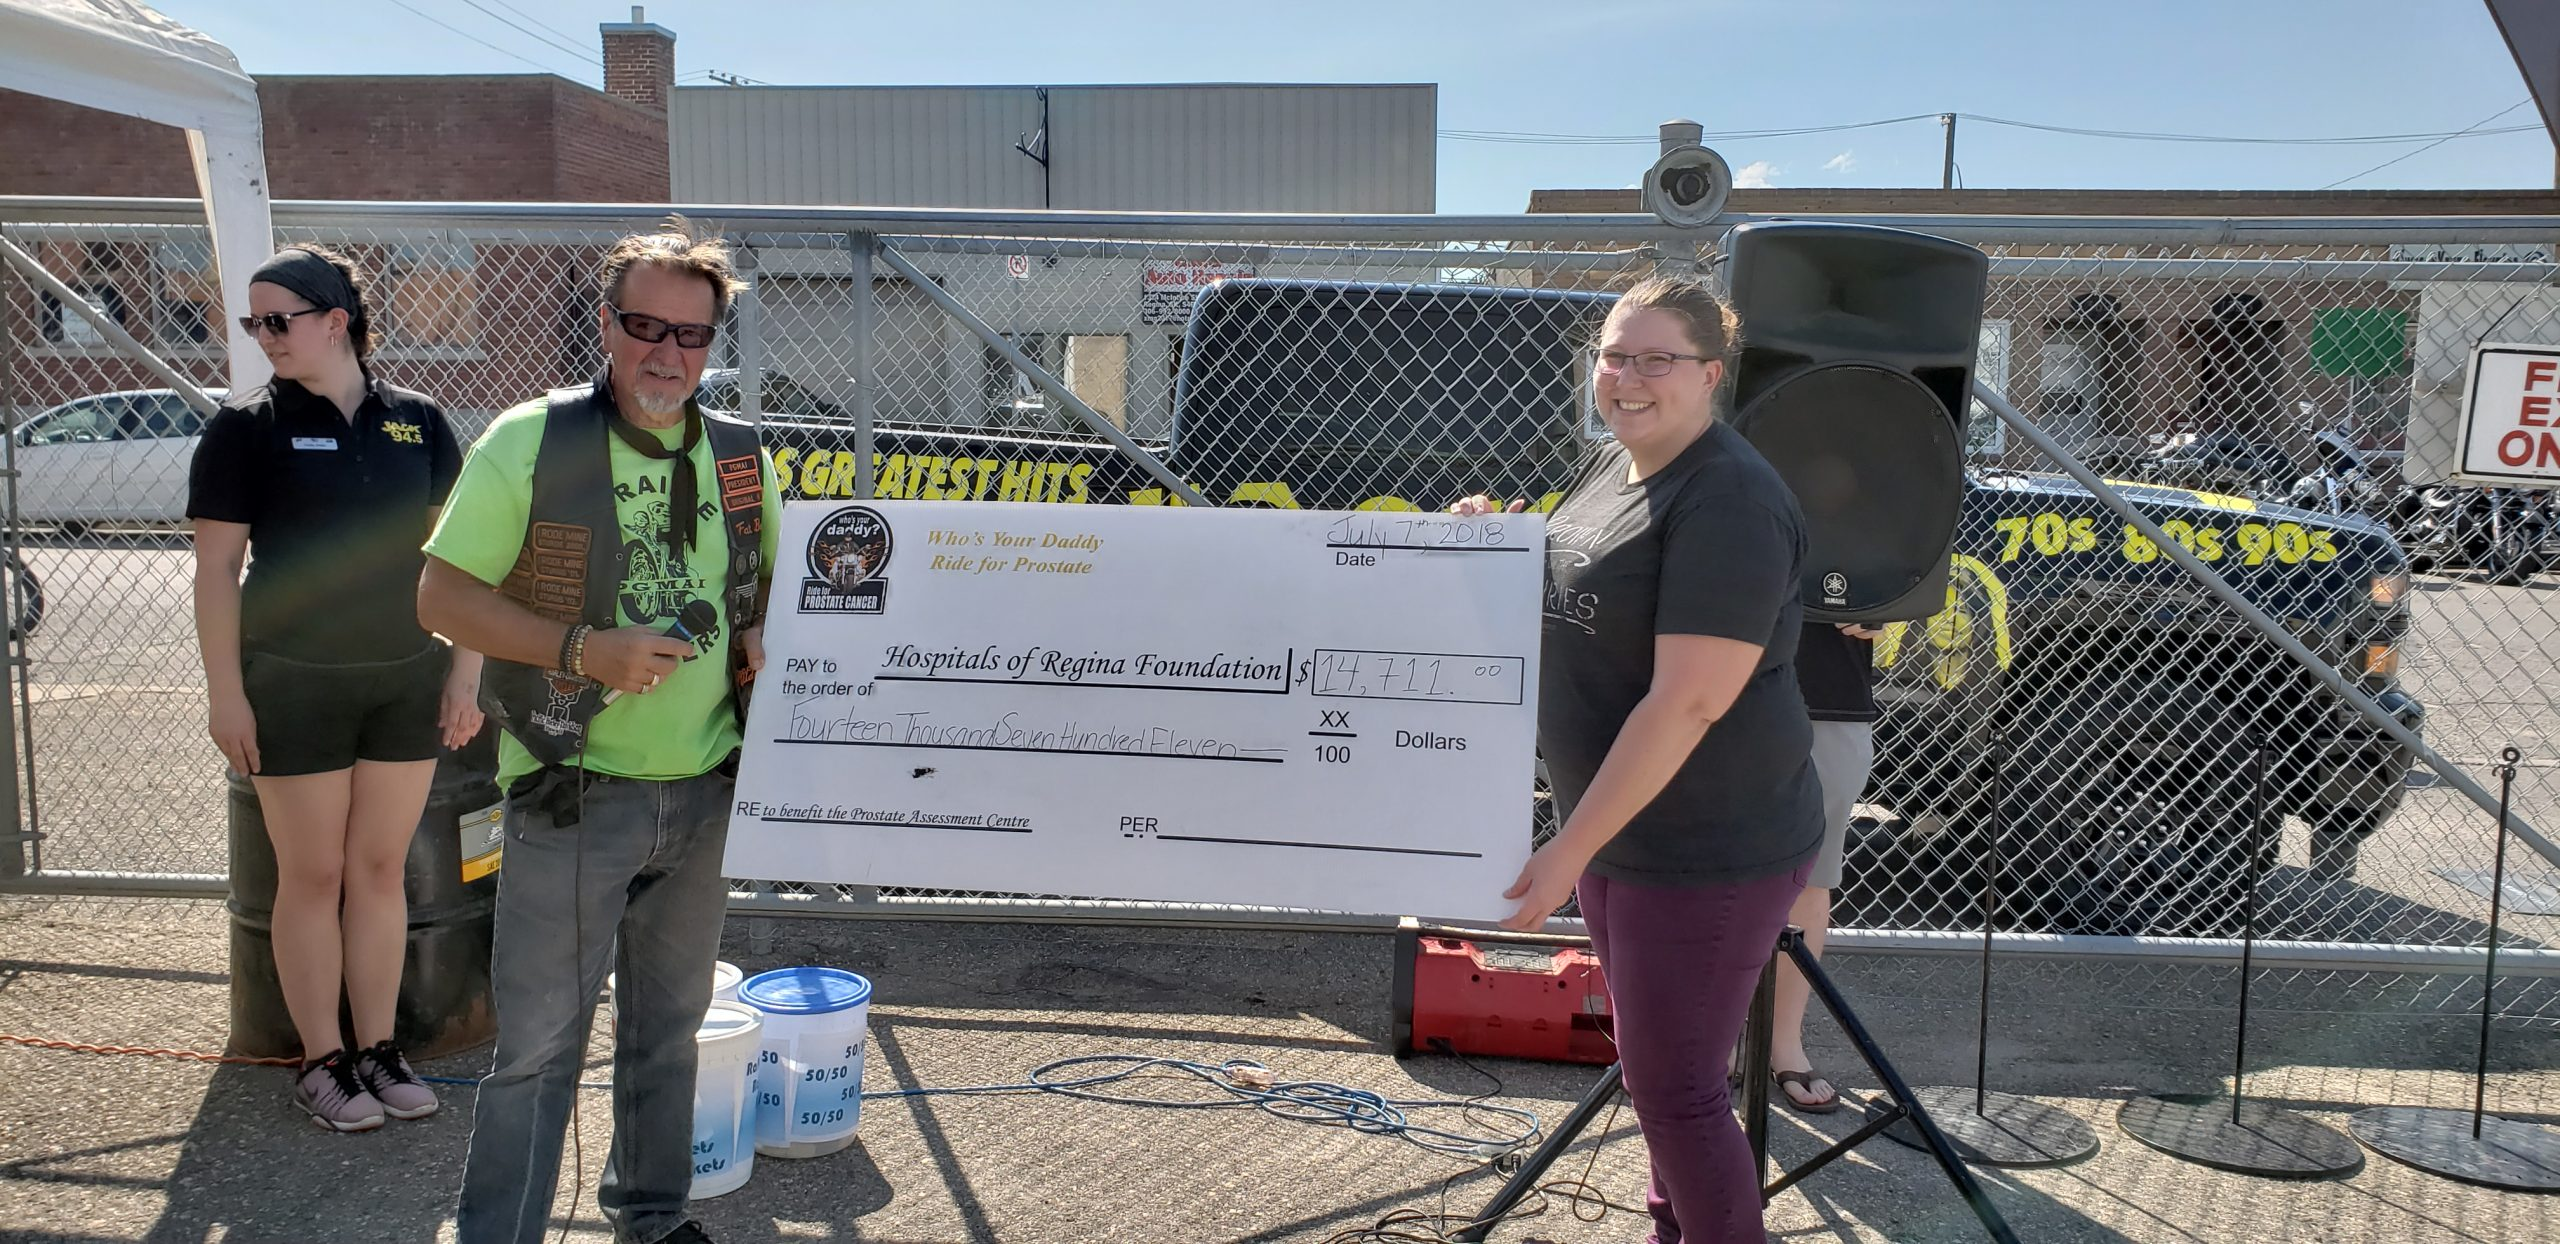 Jack 94.5 - Motorcycle enthusiasts raise $14,711 for Regina's Prostate Assessment Centre